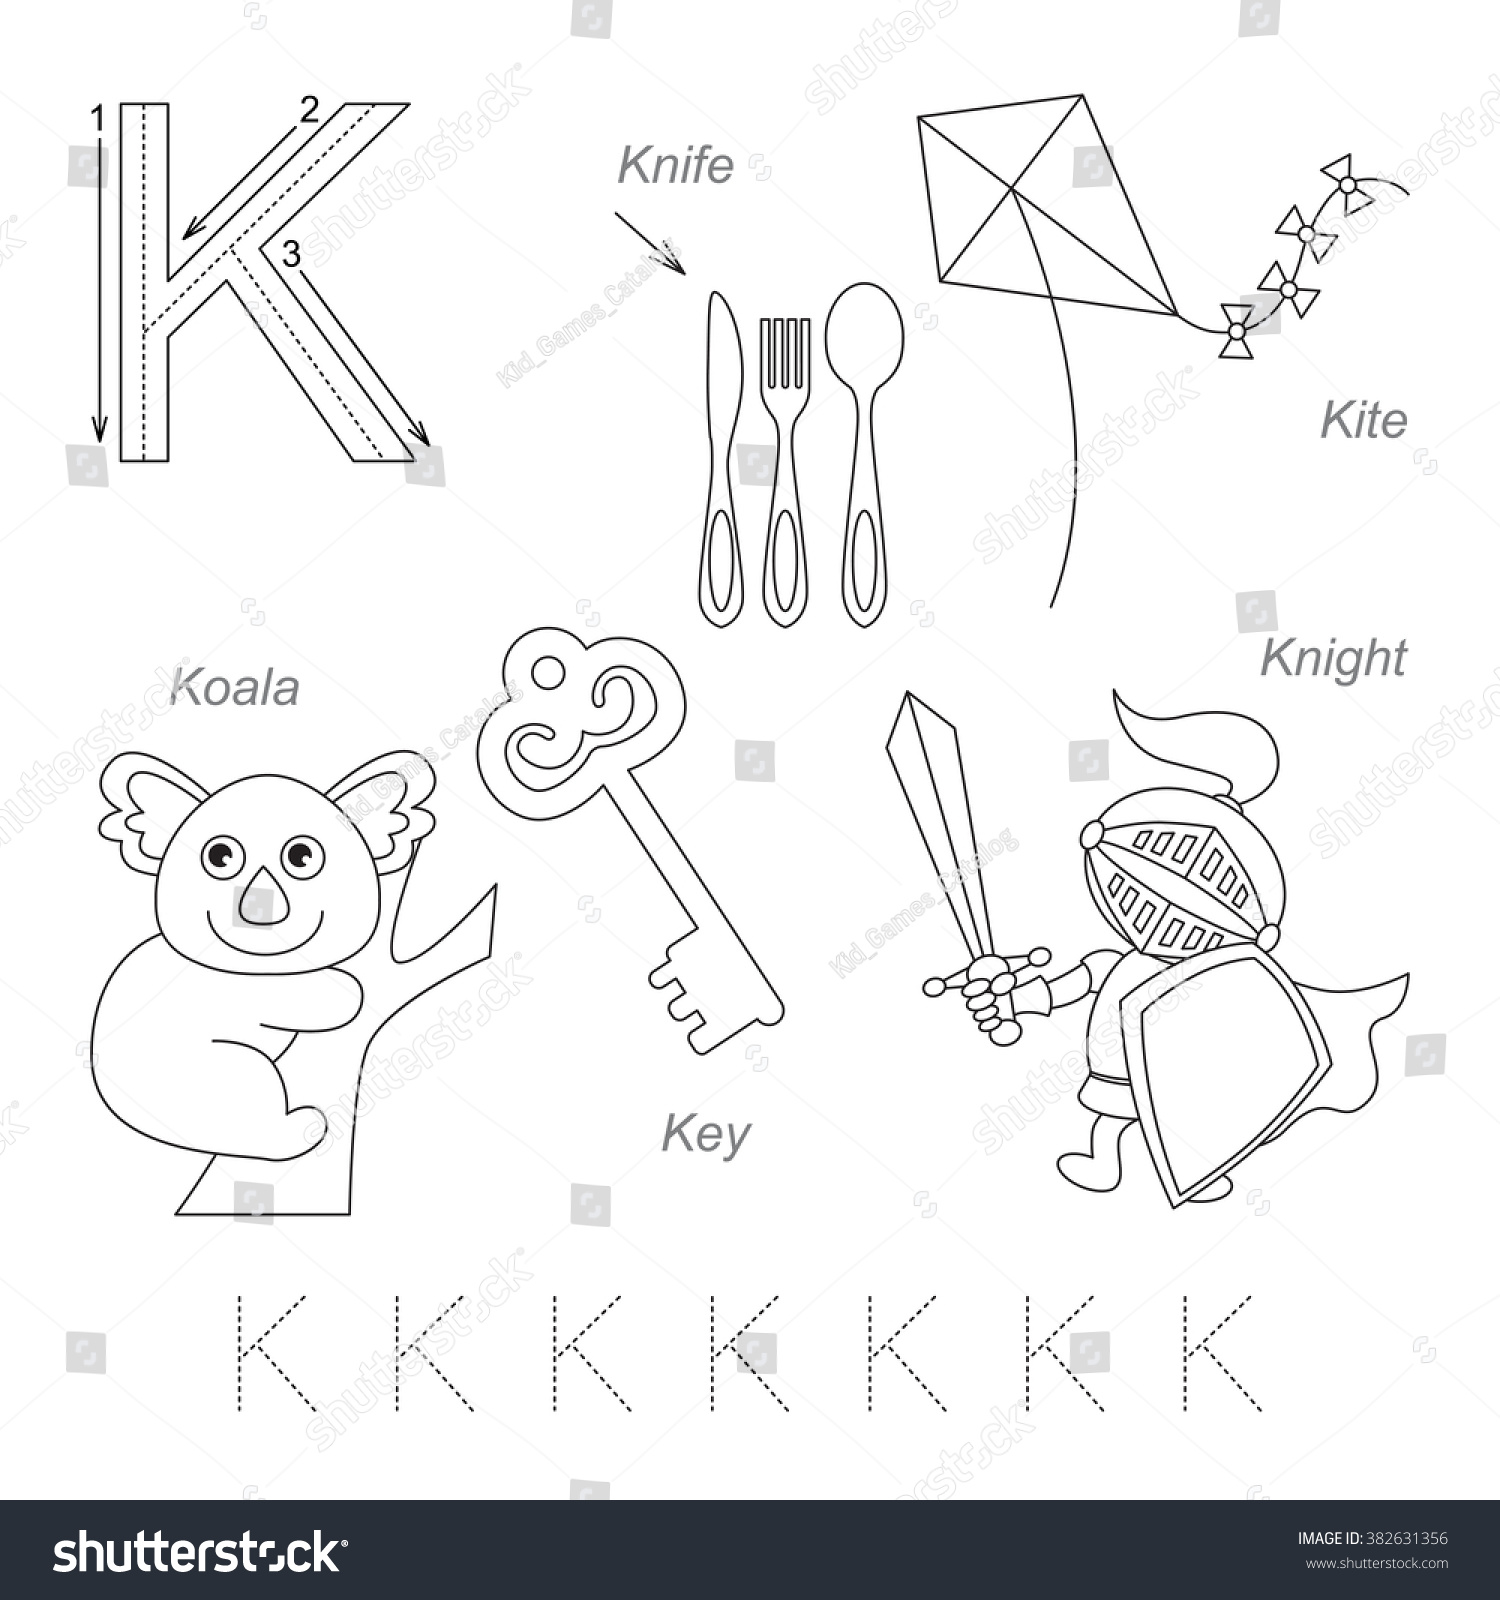 Tracing Worksheet For Children Full English Alphabet From A To Z Pictures For Letter K The